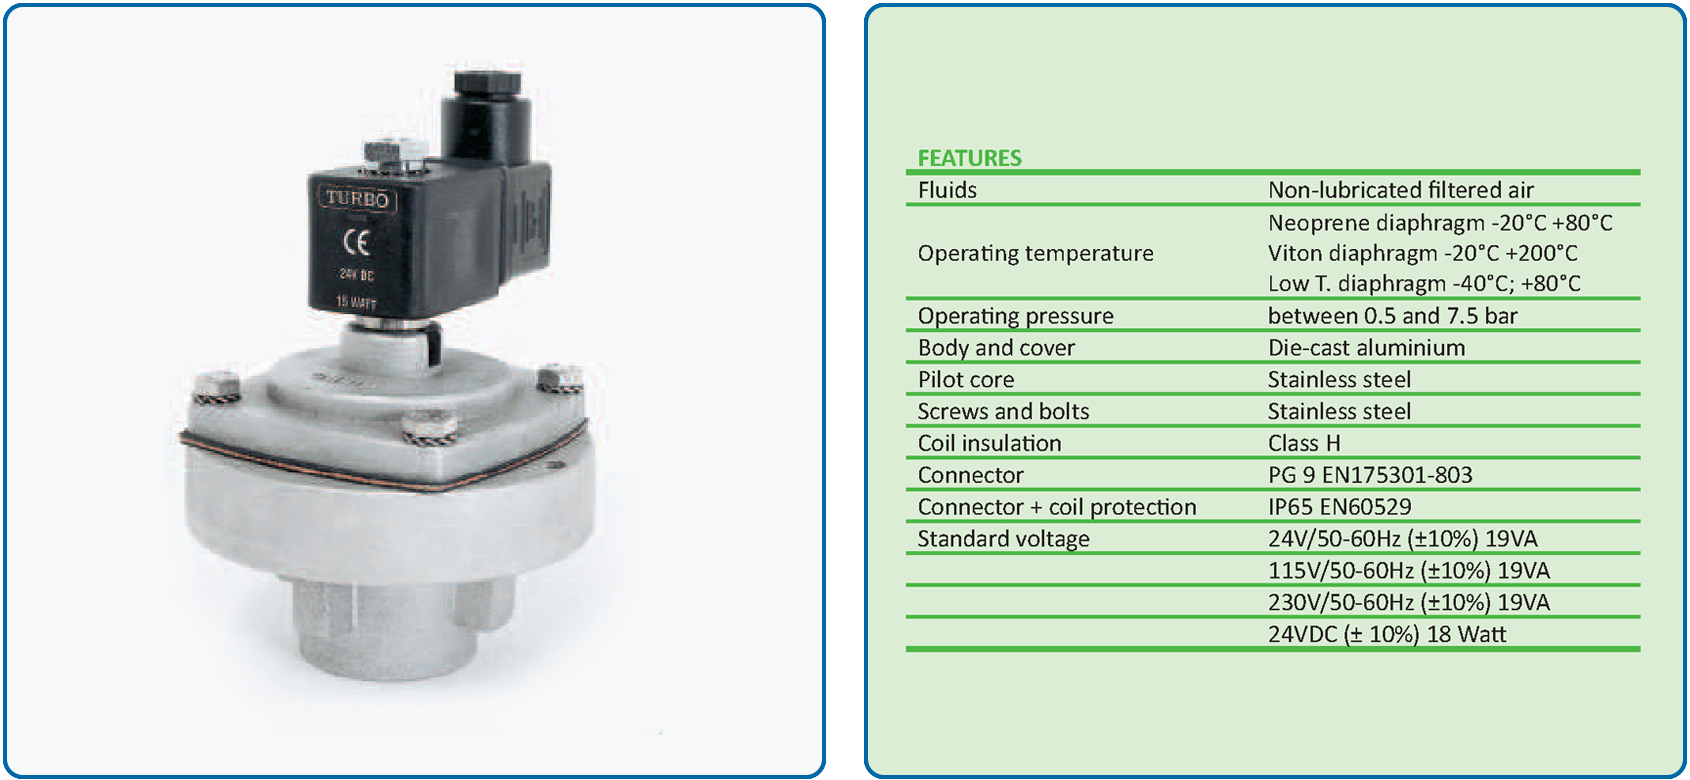 •	TS Series - Global Pulse Valves For Square Tanks